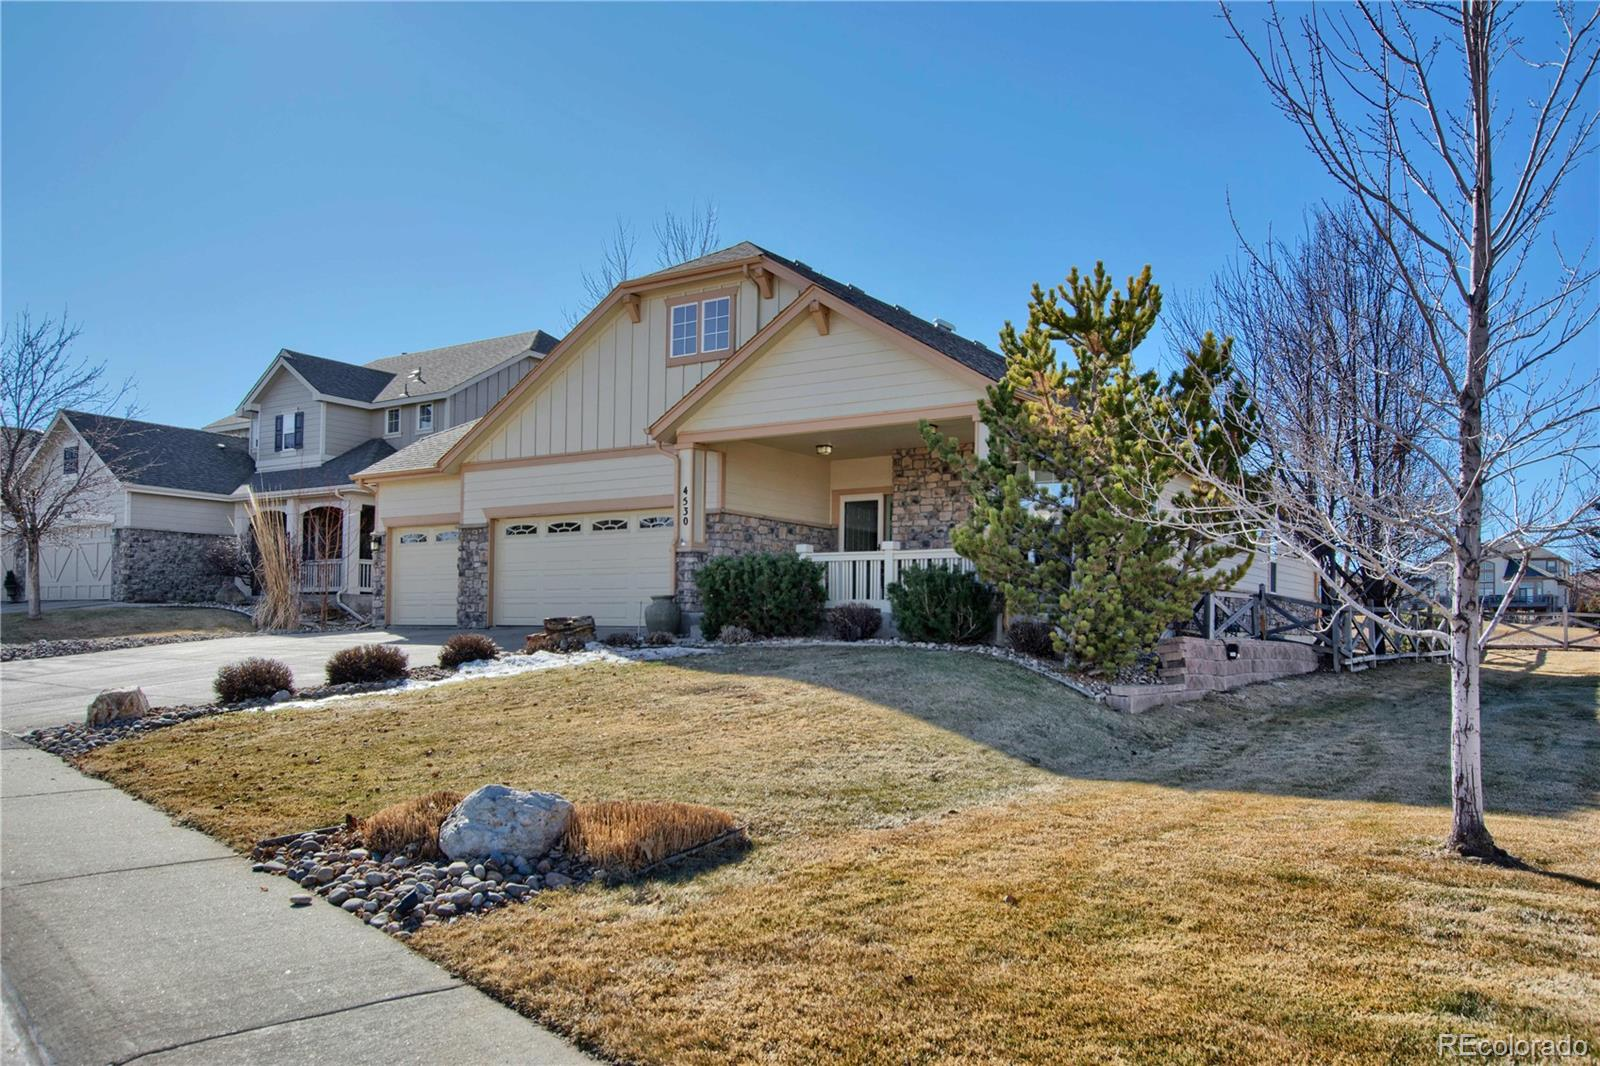 MLS# 8187125 - 2 - 4530 W 107th Drive, Westminster, CO 80031